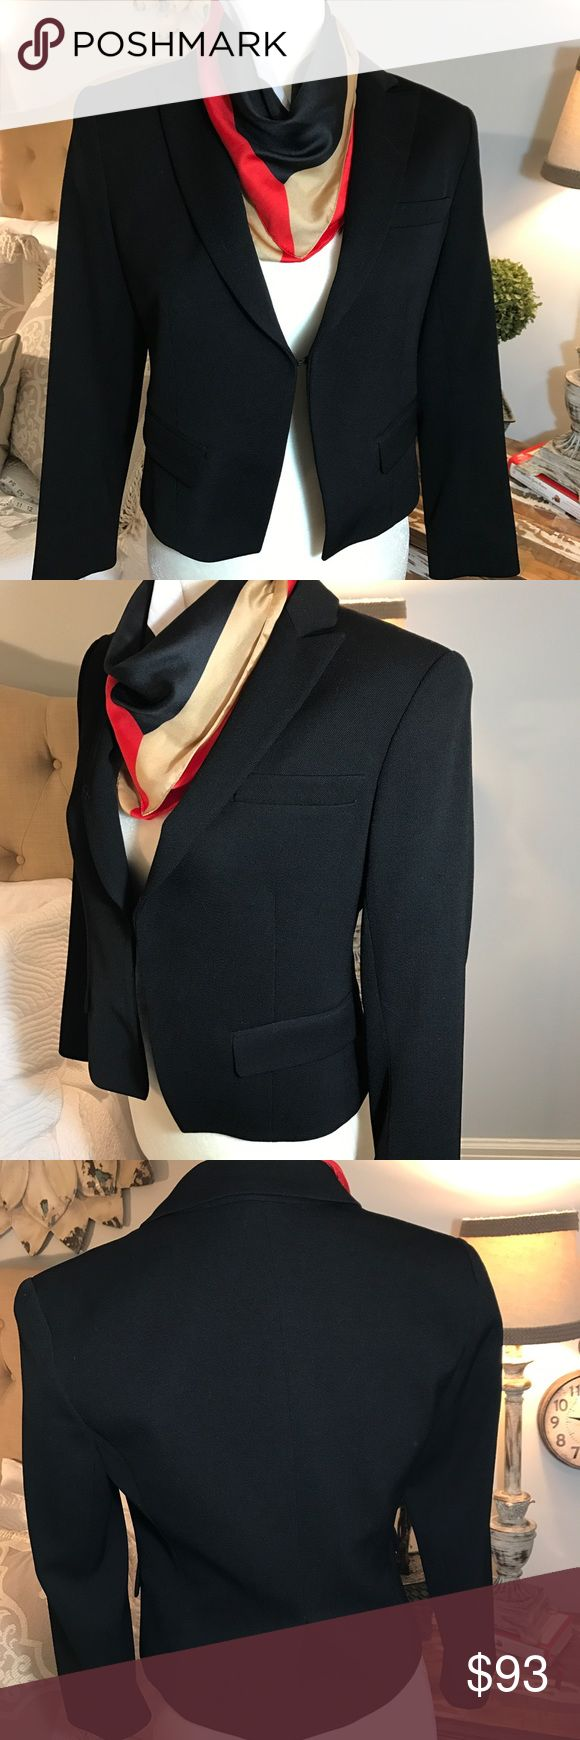 THEORY MODERN BLAZER Peak lapels, hidden front closure, flap chest pocket, flap front pockets,fully lined sleeves and single back vent. This slim fit blazer has room for movement. 93% wool, 5% polyamide, and 2% elastane.  Slightly cropped above the hip. Size 6 Theory Jackets & Coats Blazers